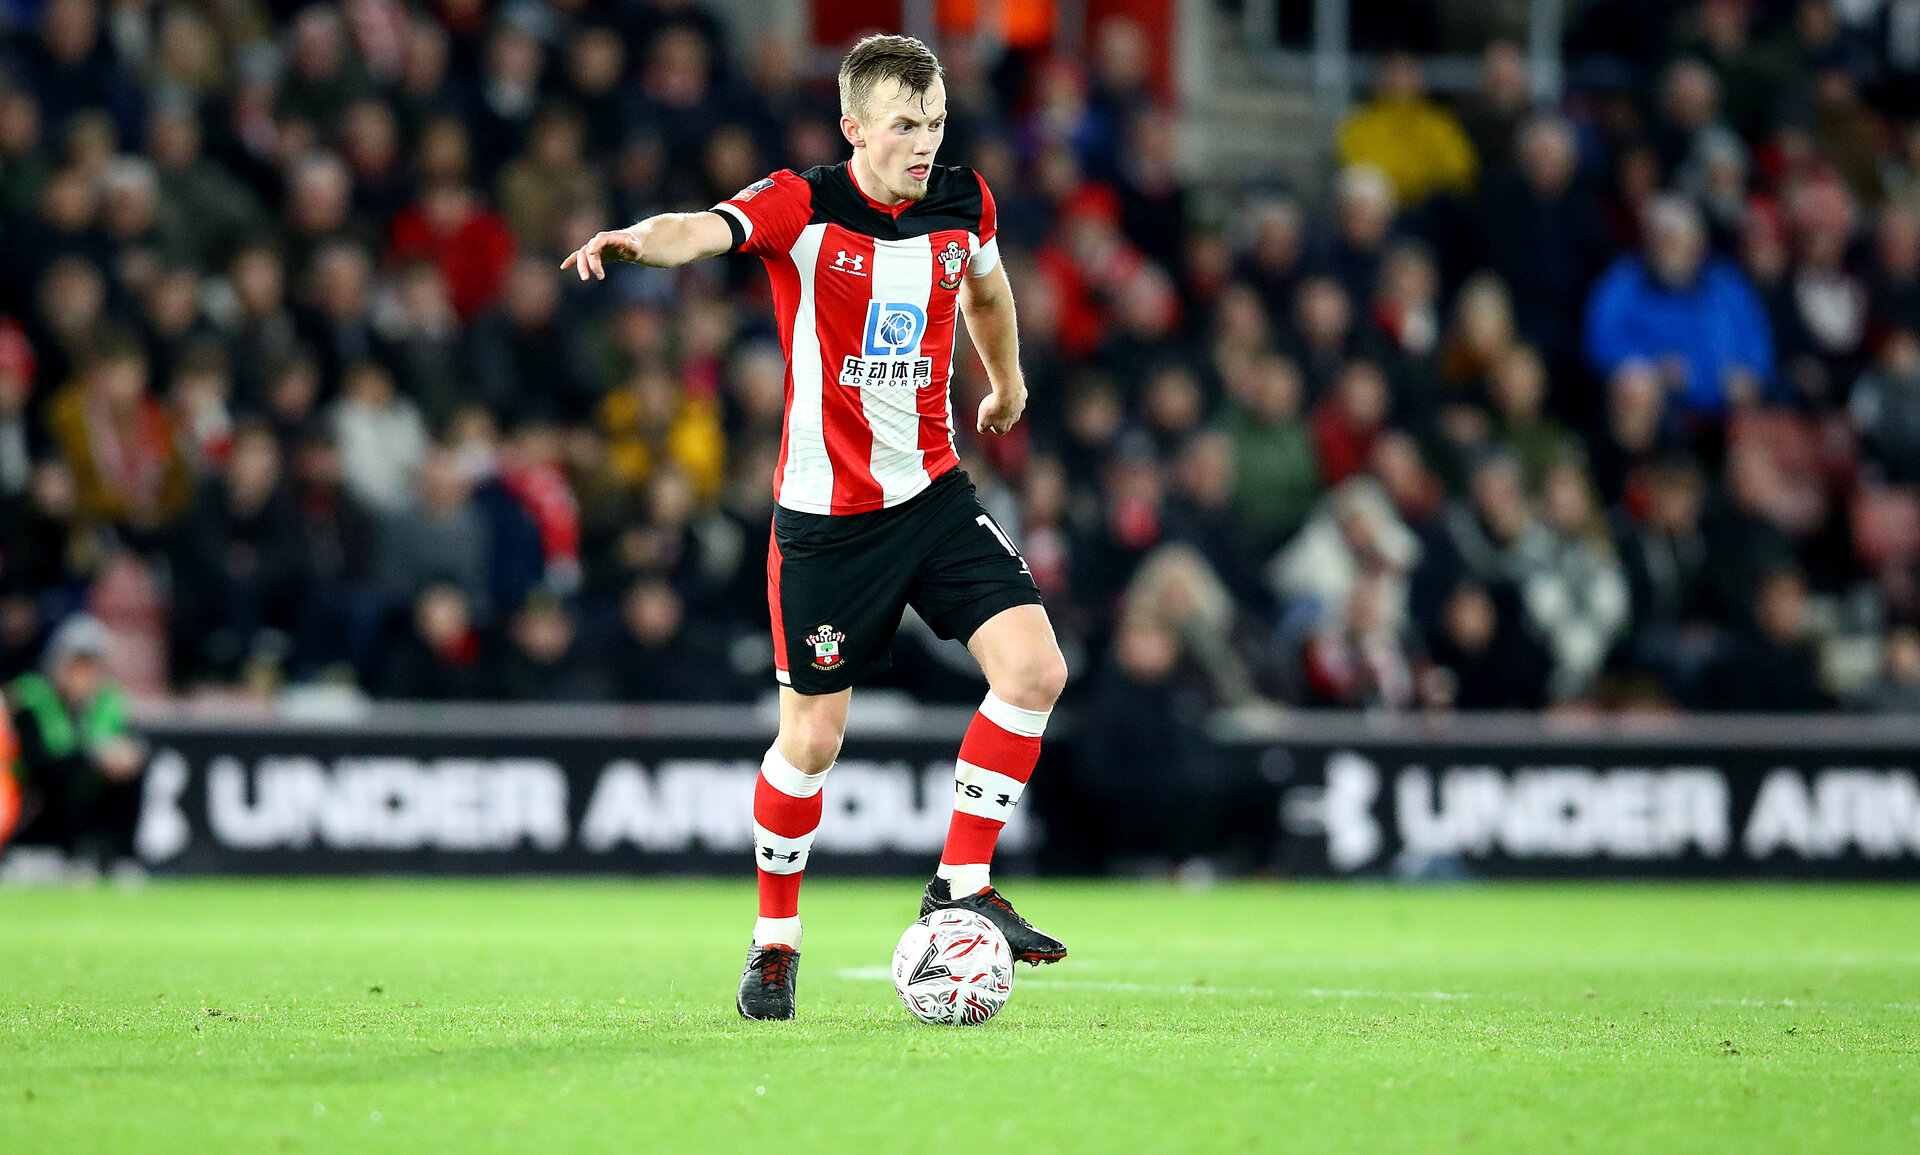 SOUTHAMPTON, ENGLAND - JANUARY 04: James Ward-Prowse of Southampton during the FA Cup Third Round match between Southampton FC and Huddersfield Town at St. Mary's Stadium on January 04, 2020 in Southampton, England. (Photo by Matt Watson/Getty Images)